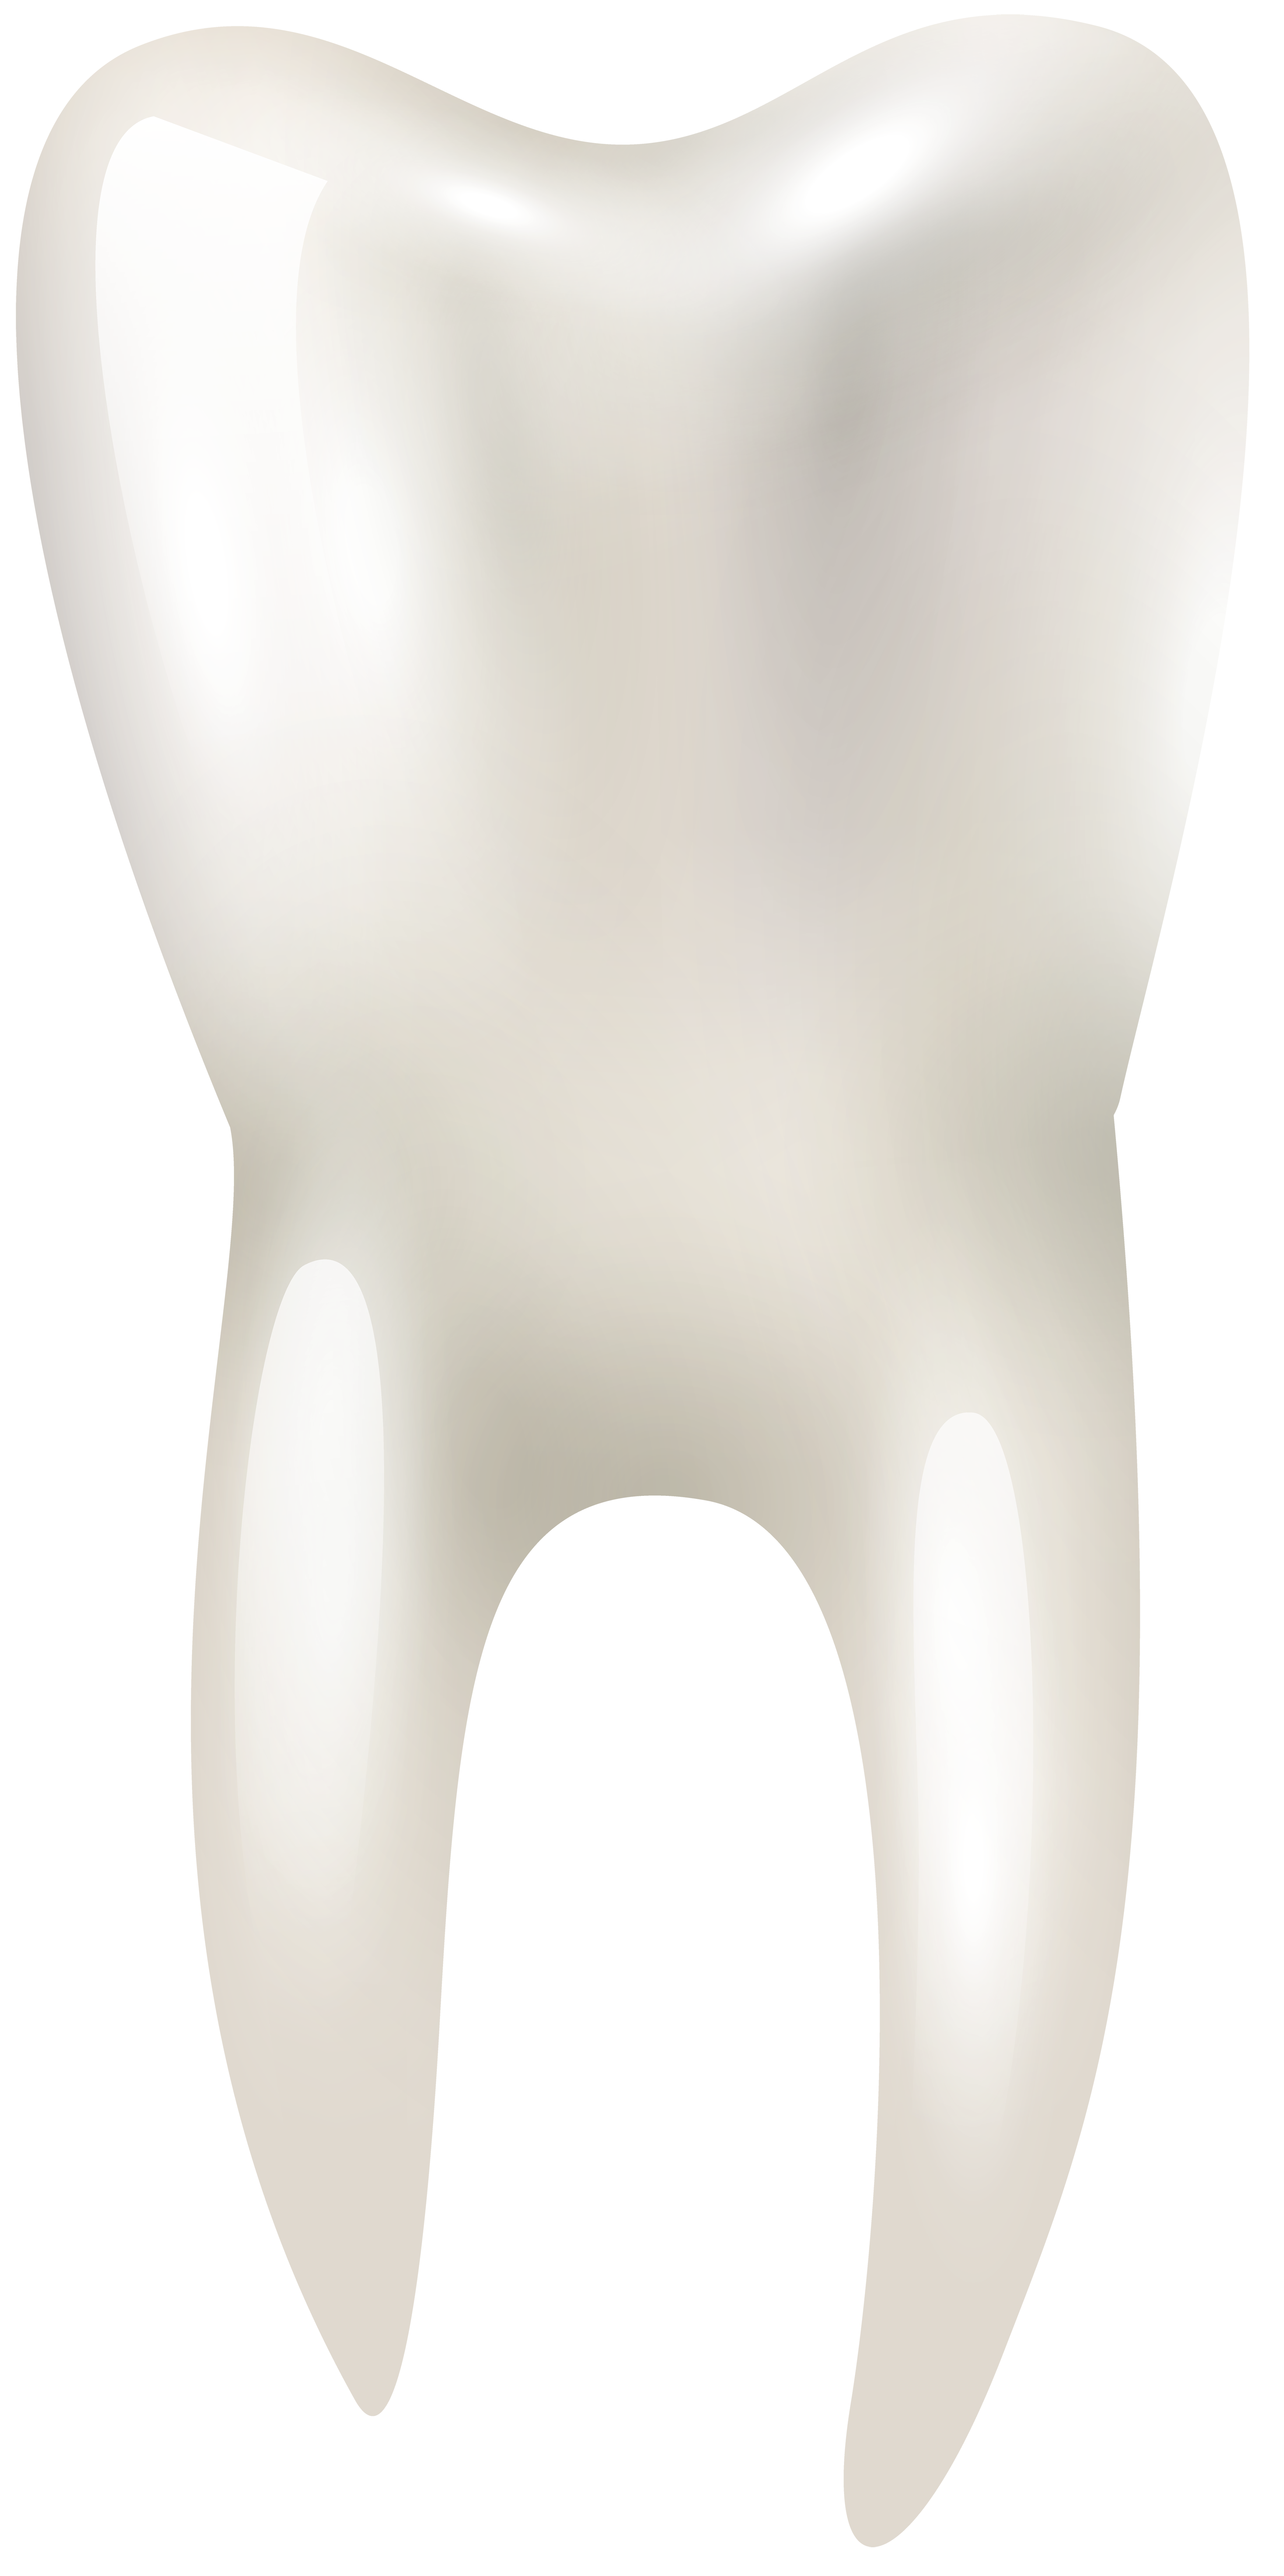 3490x7000 Tooth Png Clip Art